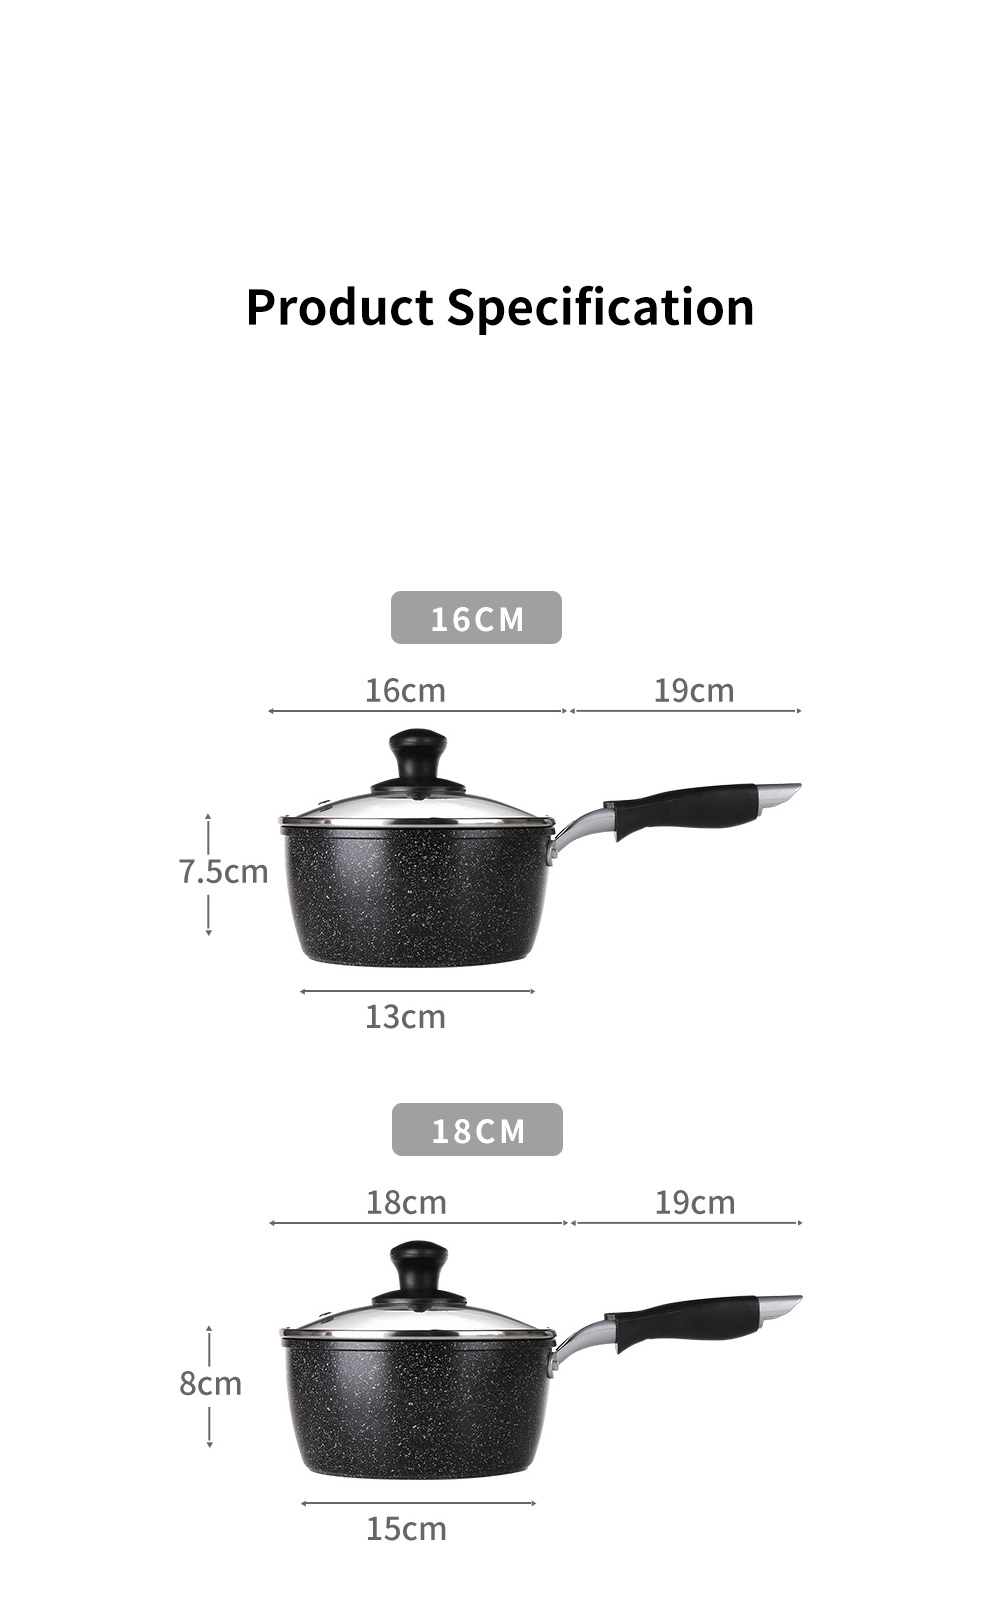 New Style 7.087 Inch Non-stick Medical Stone Milk Pan Small-sized Complementary Food Pot for Babies Food-grade Quality 13